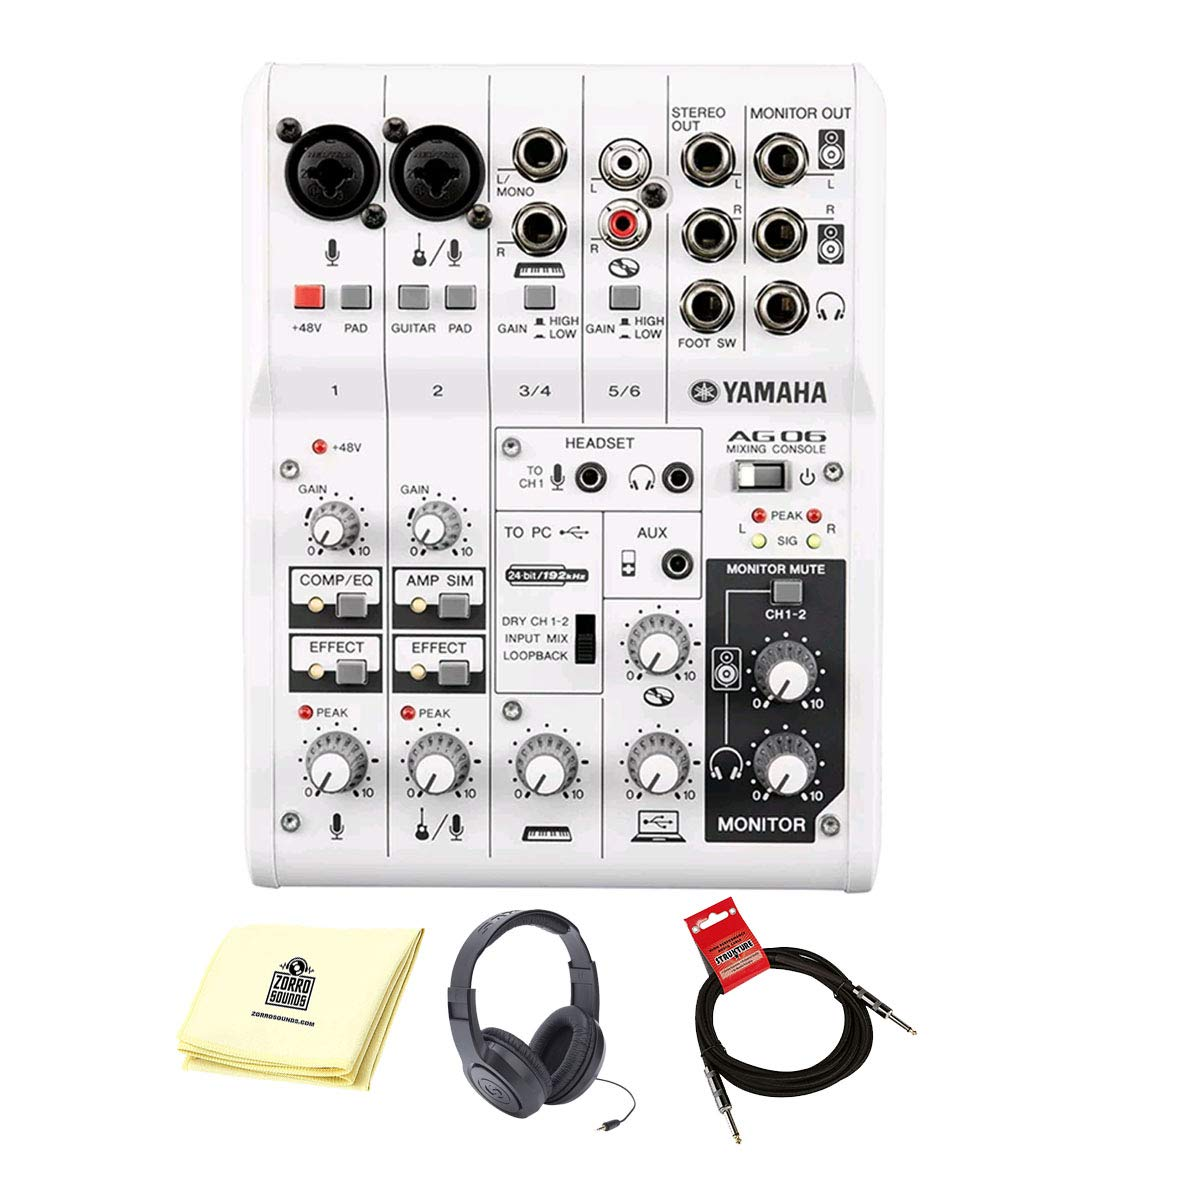 Yamaha AG06 6-Channel Mixer/Interface with Headset, Cable, and Polishing Cloth